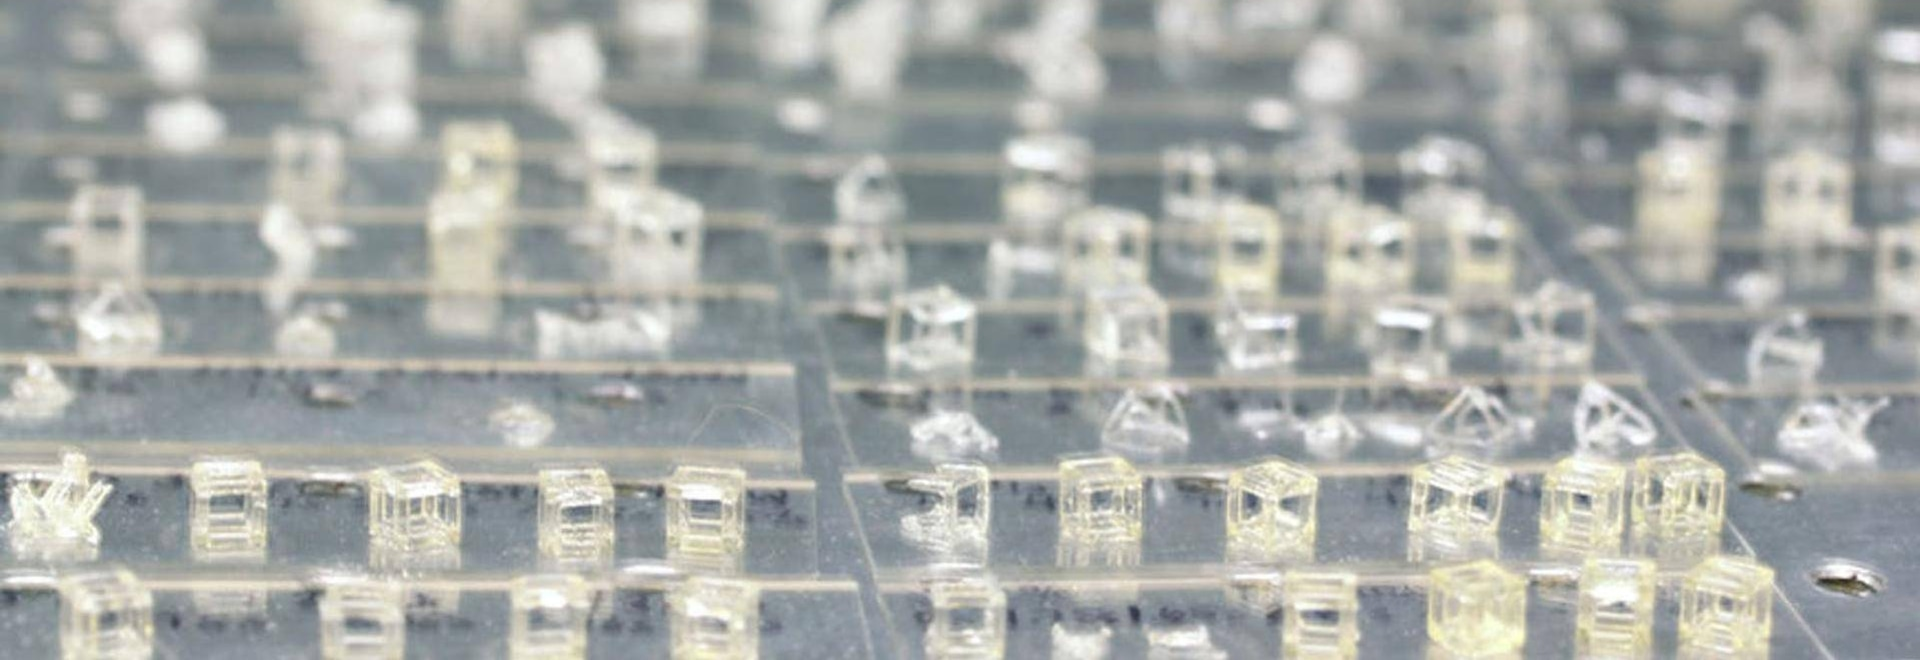 By using laser-generated, hologram-like 3D images flashed into photosensitive resin, researchers at Lawrence Livermore National Laboratory, along with academic collaborators, have discovered they c...